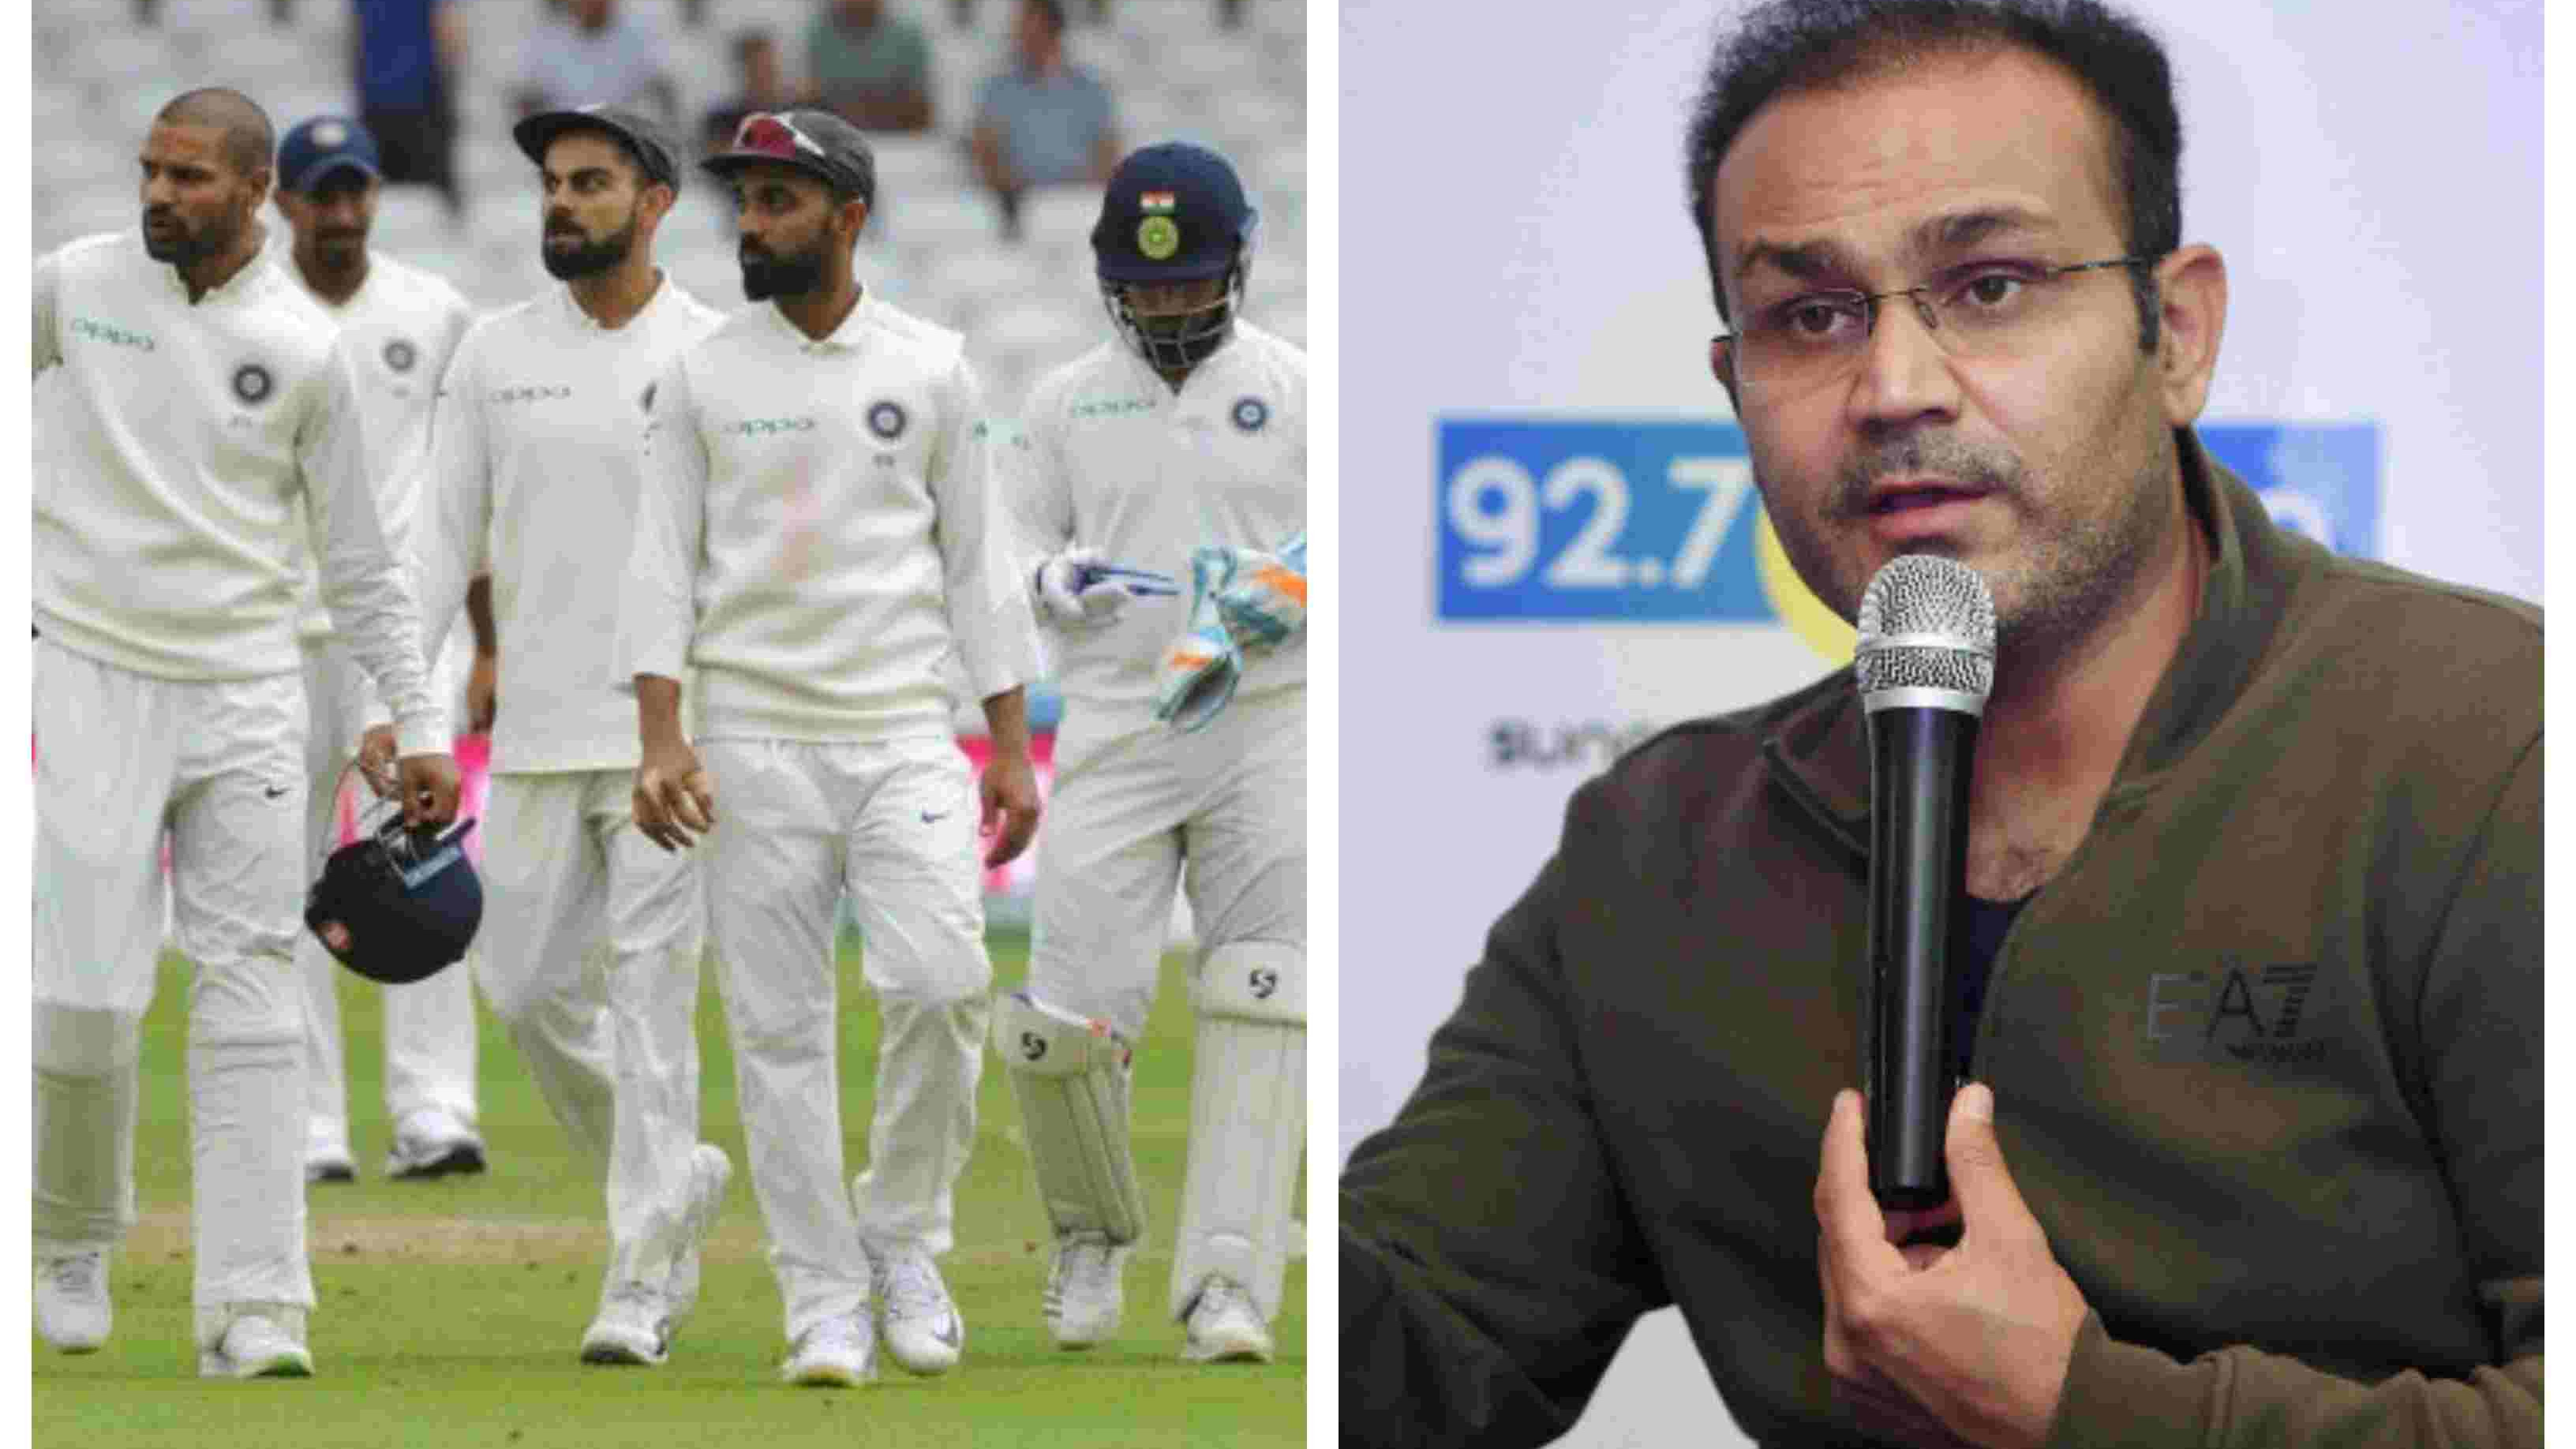 ENG v IND 2018: Team India need to walk the talk on overseas tours, says Virender Sehwag